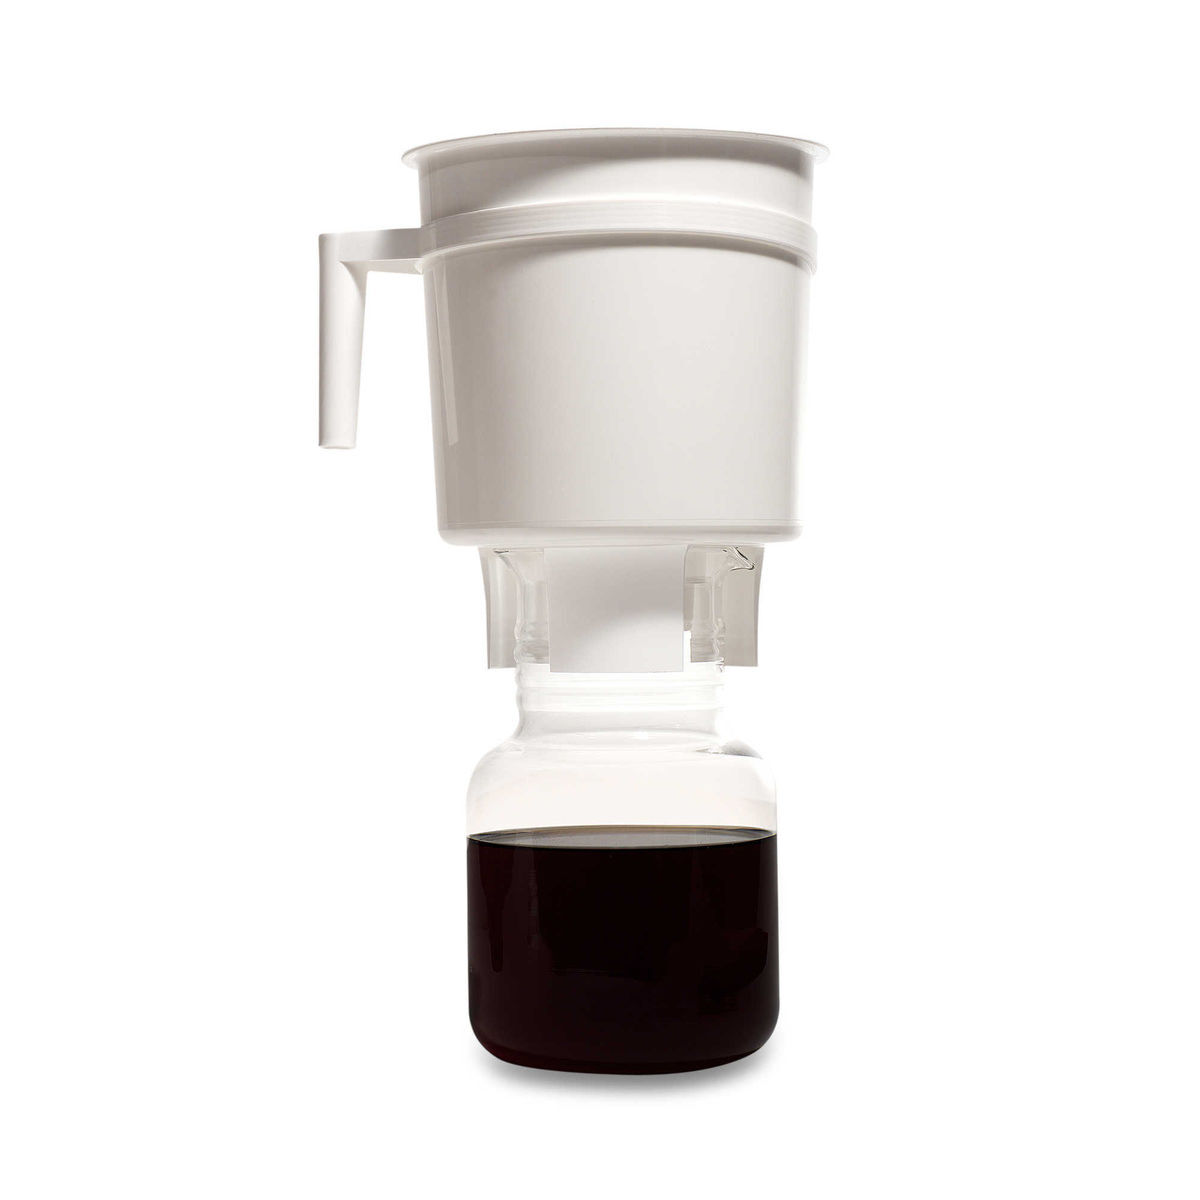 Toddy Cold Brew Coffee System Illy Eshop